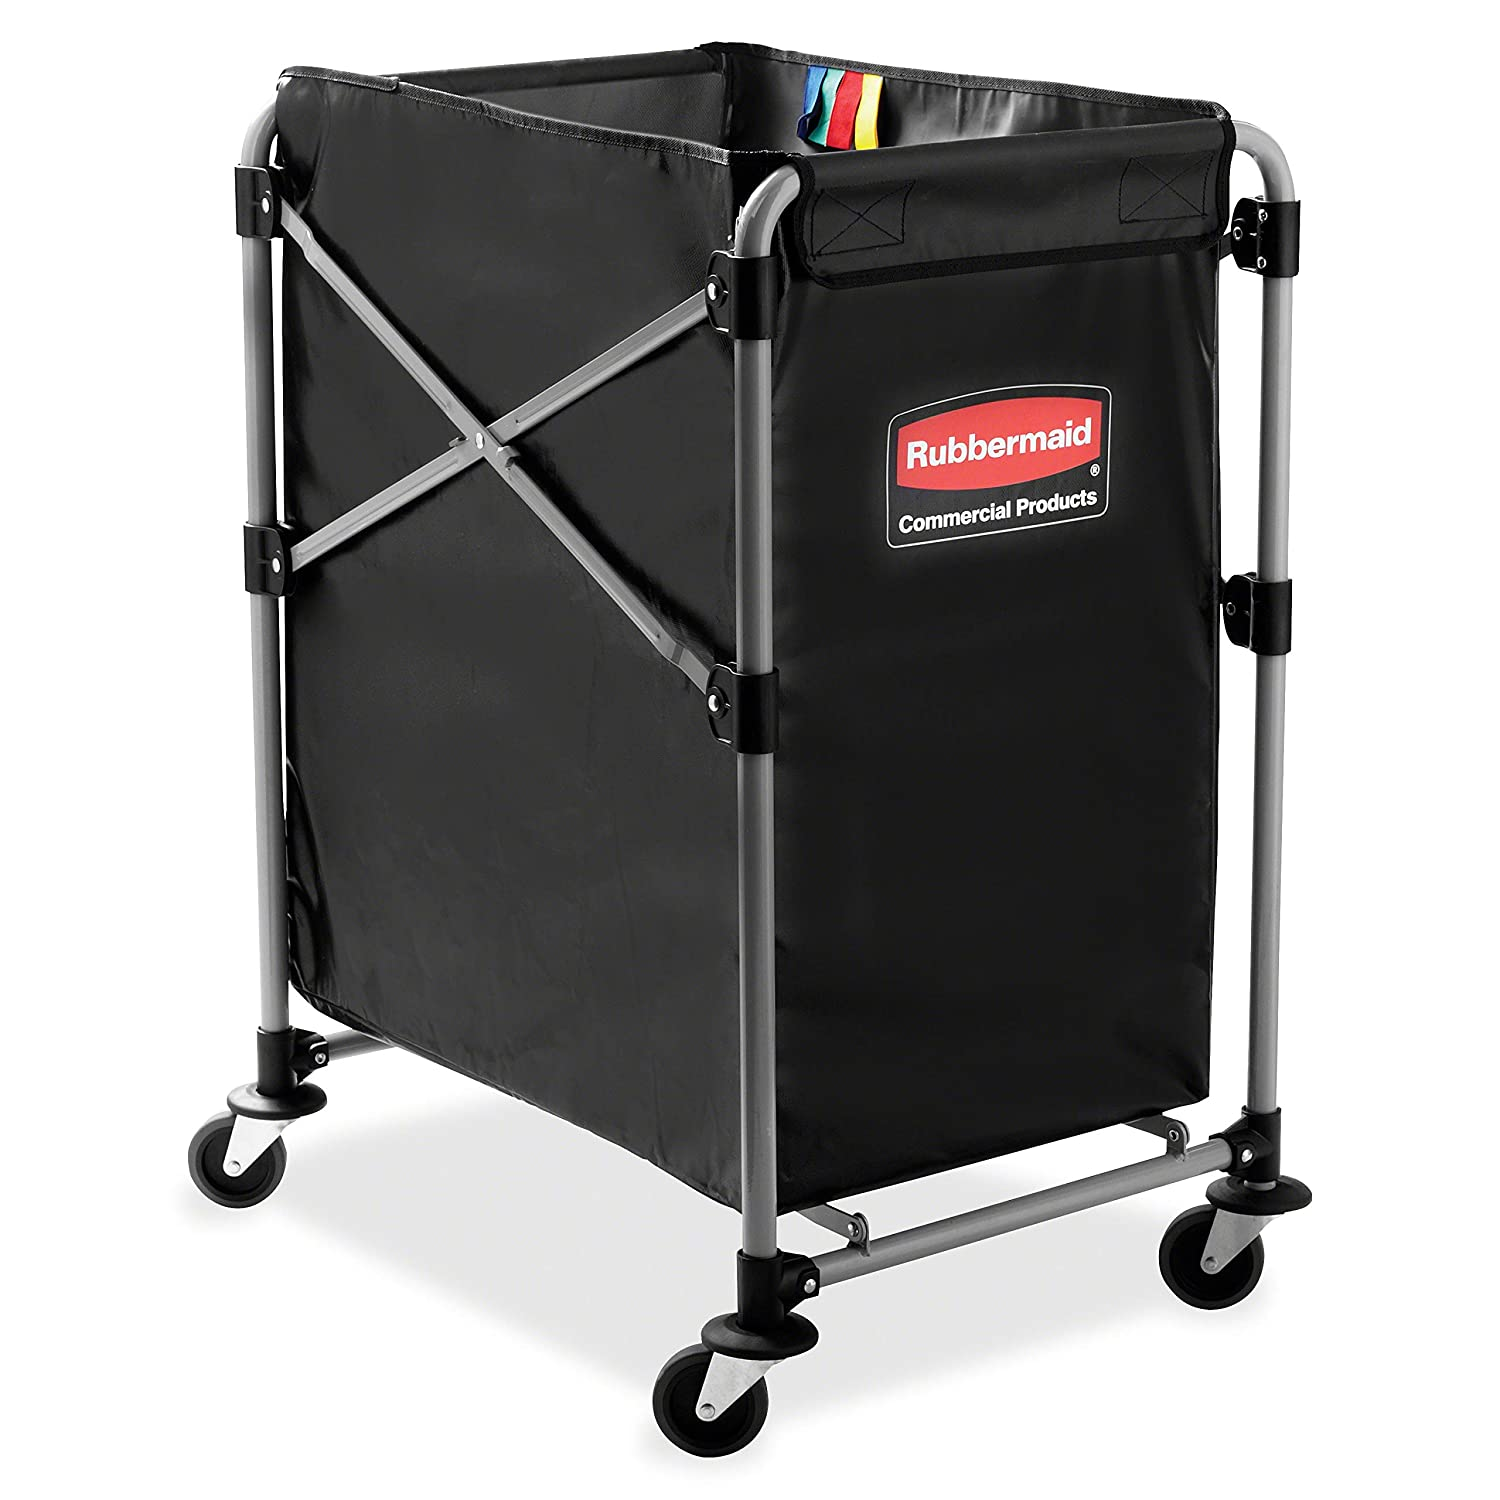 Rubbermaid Commercial Collapsible X-Cart, Steel, 4 Bushel Cart, 24 in L x20 in W x24 in H, Black (1881749)